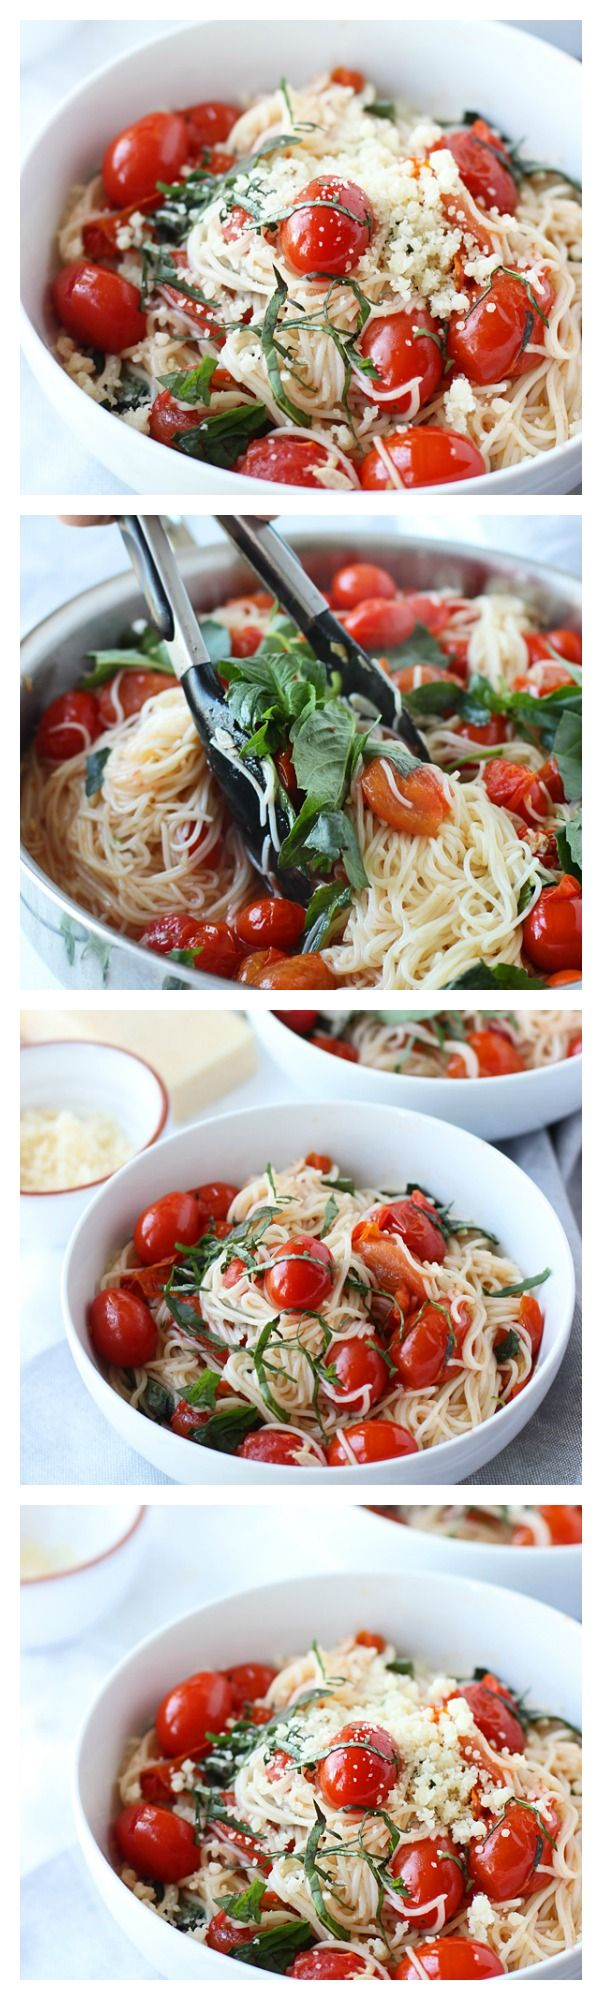 20 Minute Cherry Tomato and Basil Pasta by ohsweetbasil